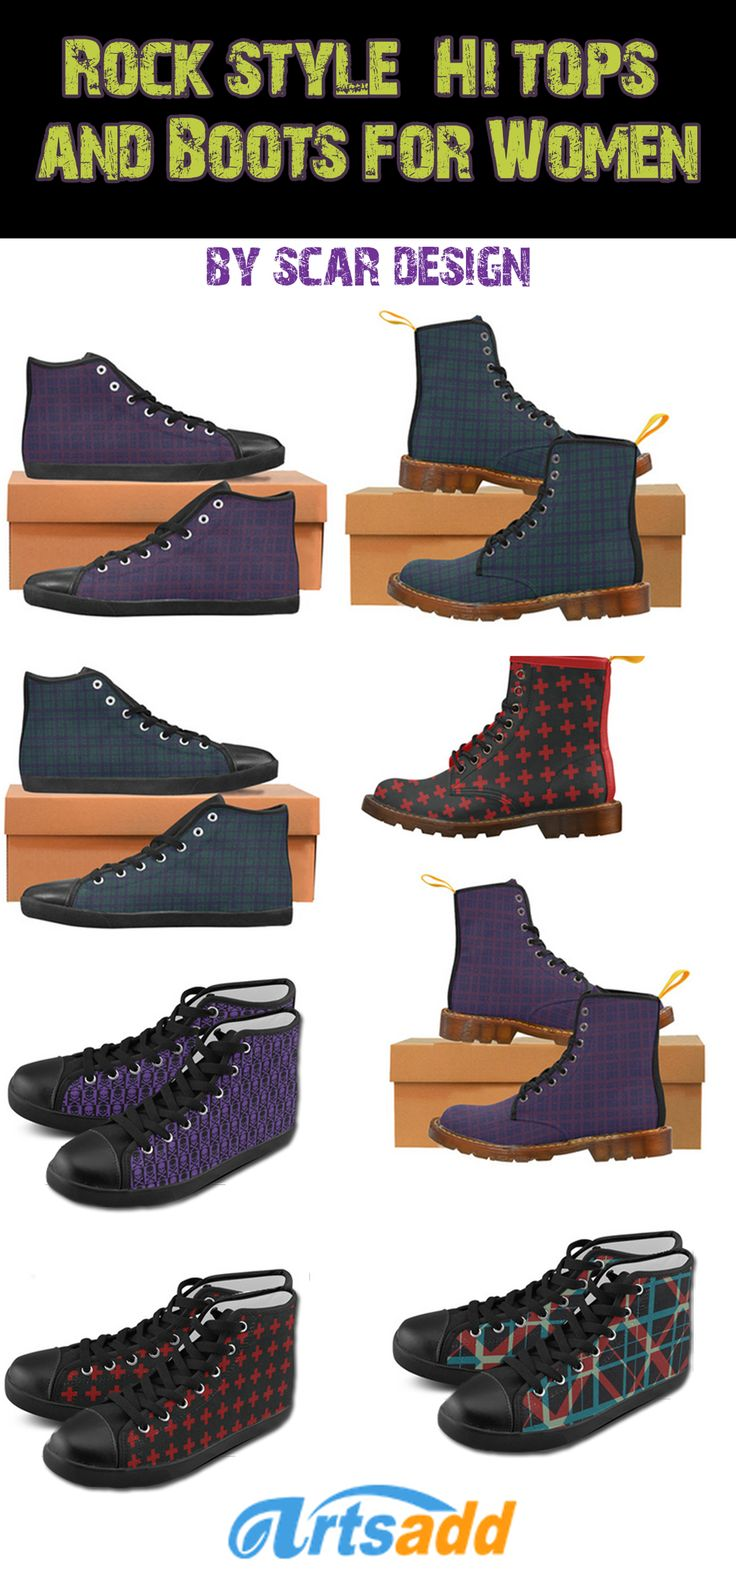 Rock Style Canvas  Hi-Tops & Boots for Women by Scar Design  #canvasboots #shoes #spring #summer #fashion #womansshoes #rockstyle #rock #badassstyle #style #rockstyleshoes #rockboots #rockhitops #sneakers #hitopshoes #scardesign #artsadd